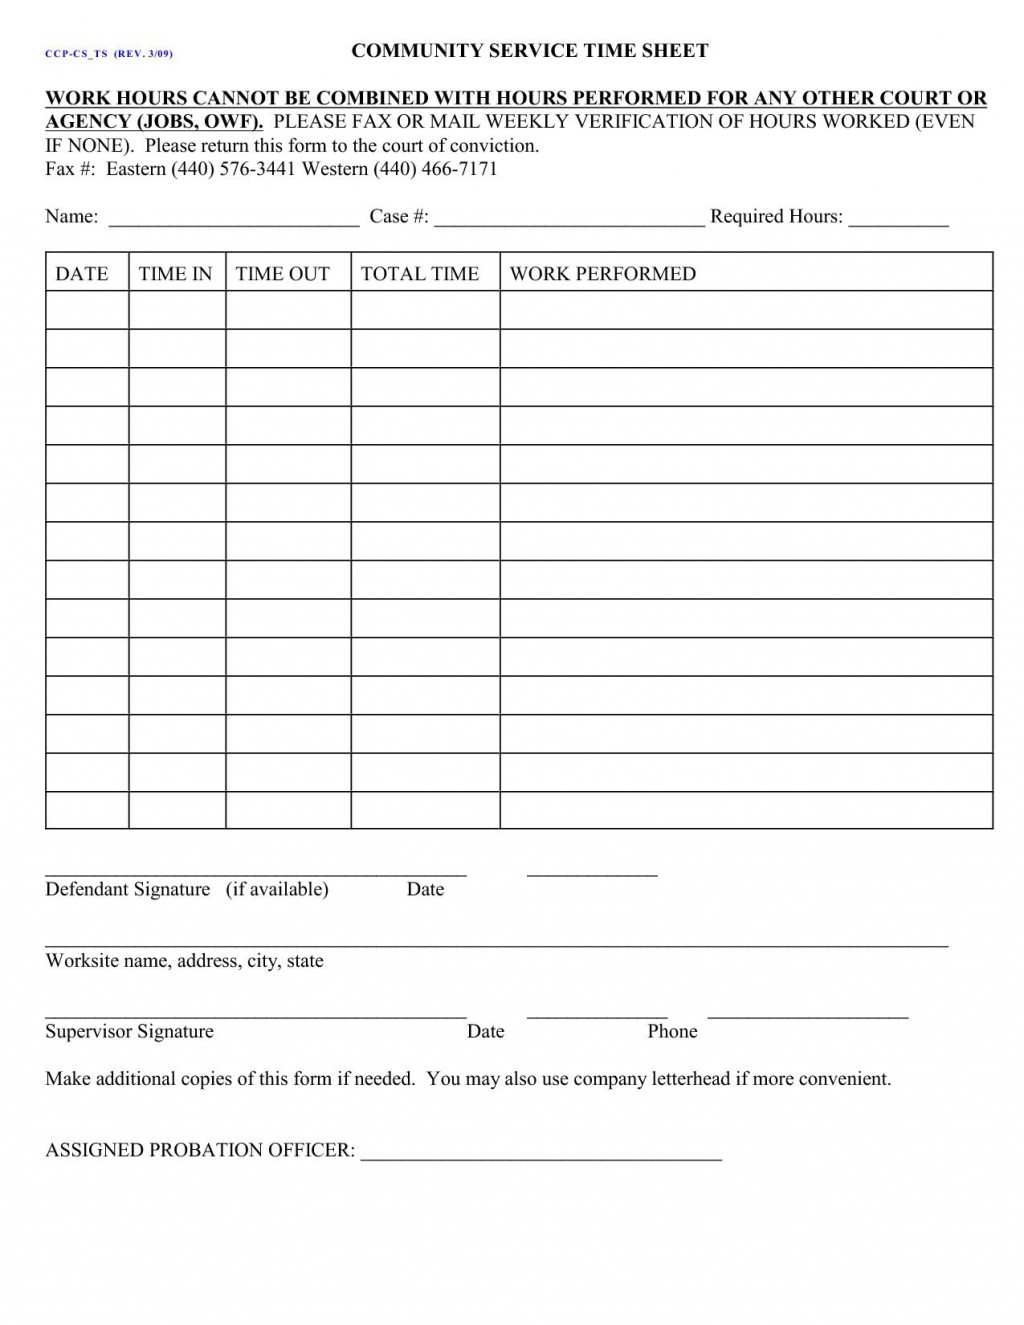 003 Fearsome Volunteer Hour Form Template Inspiration  Service Community PdfLarge